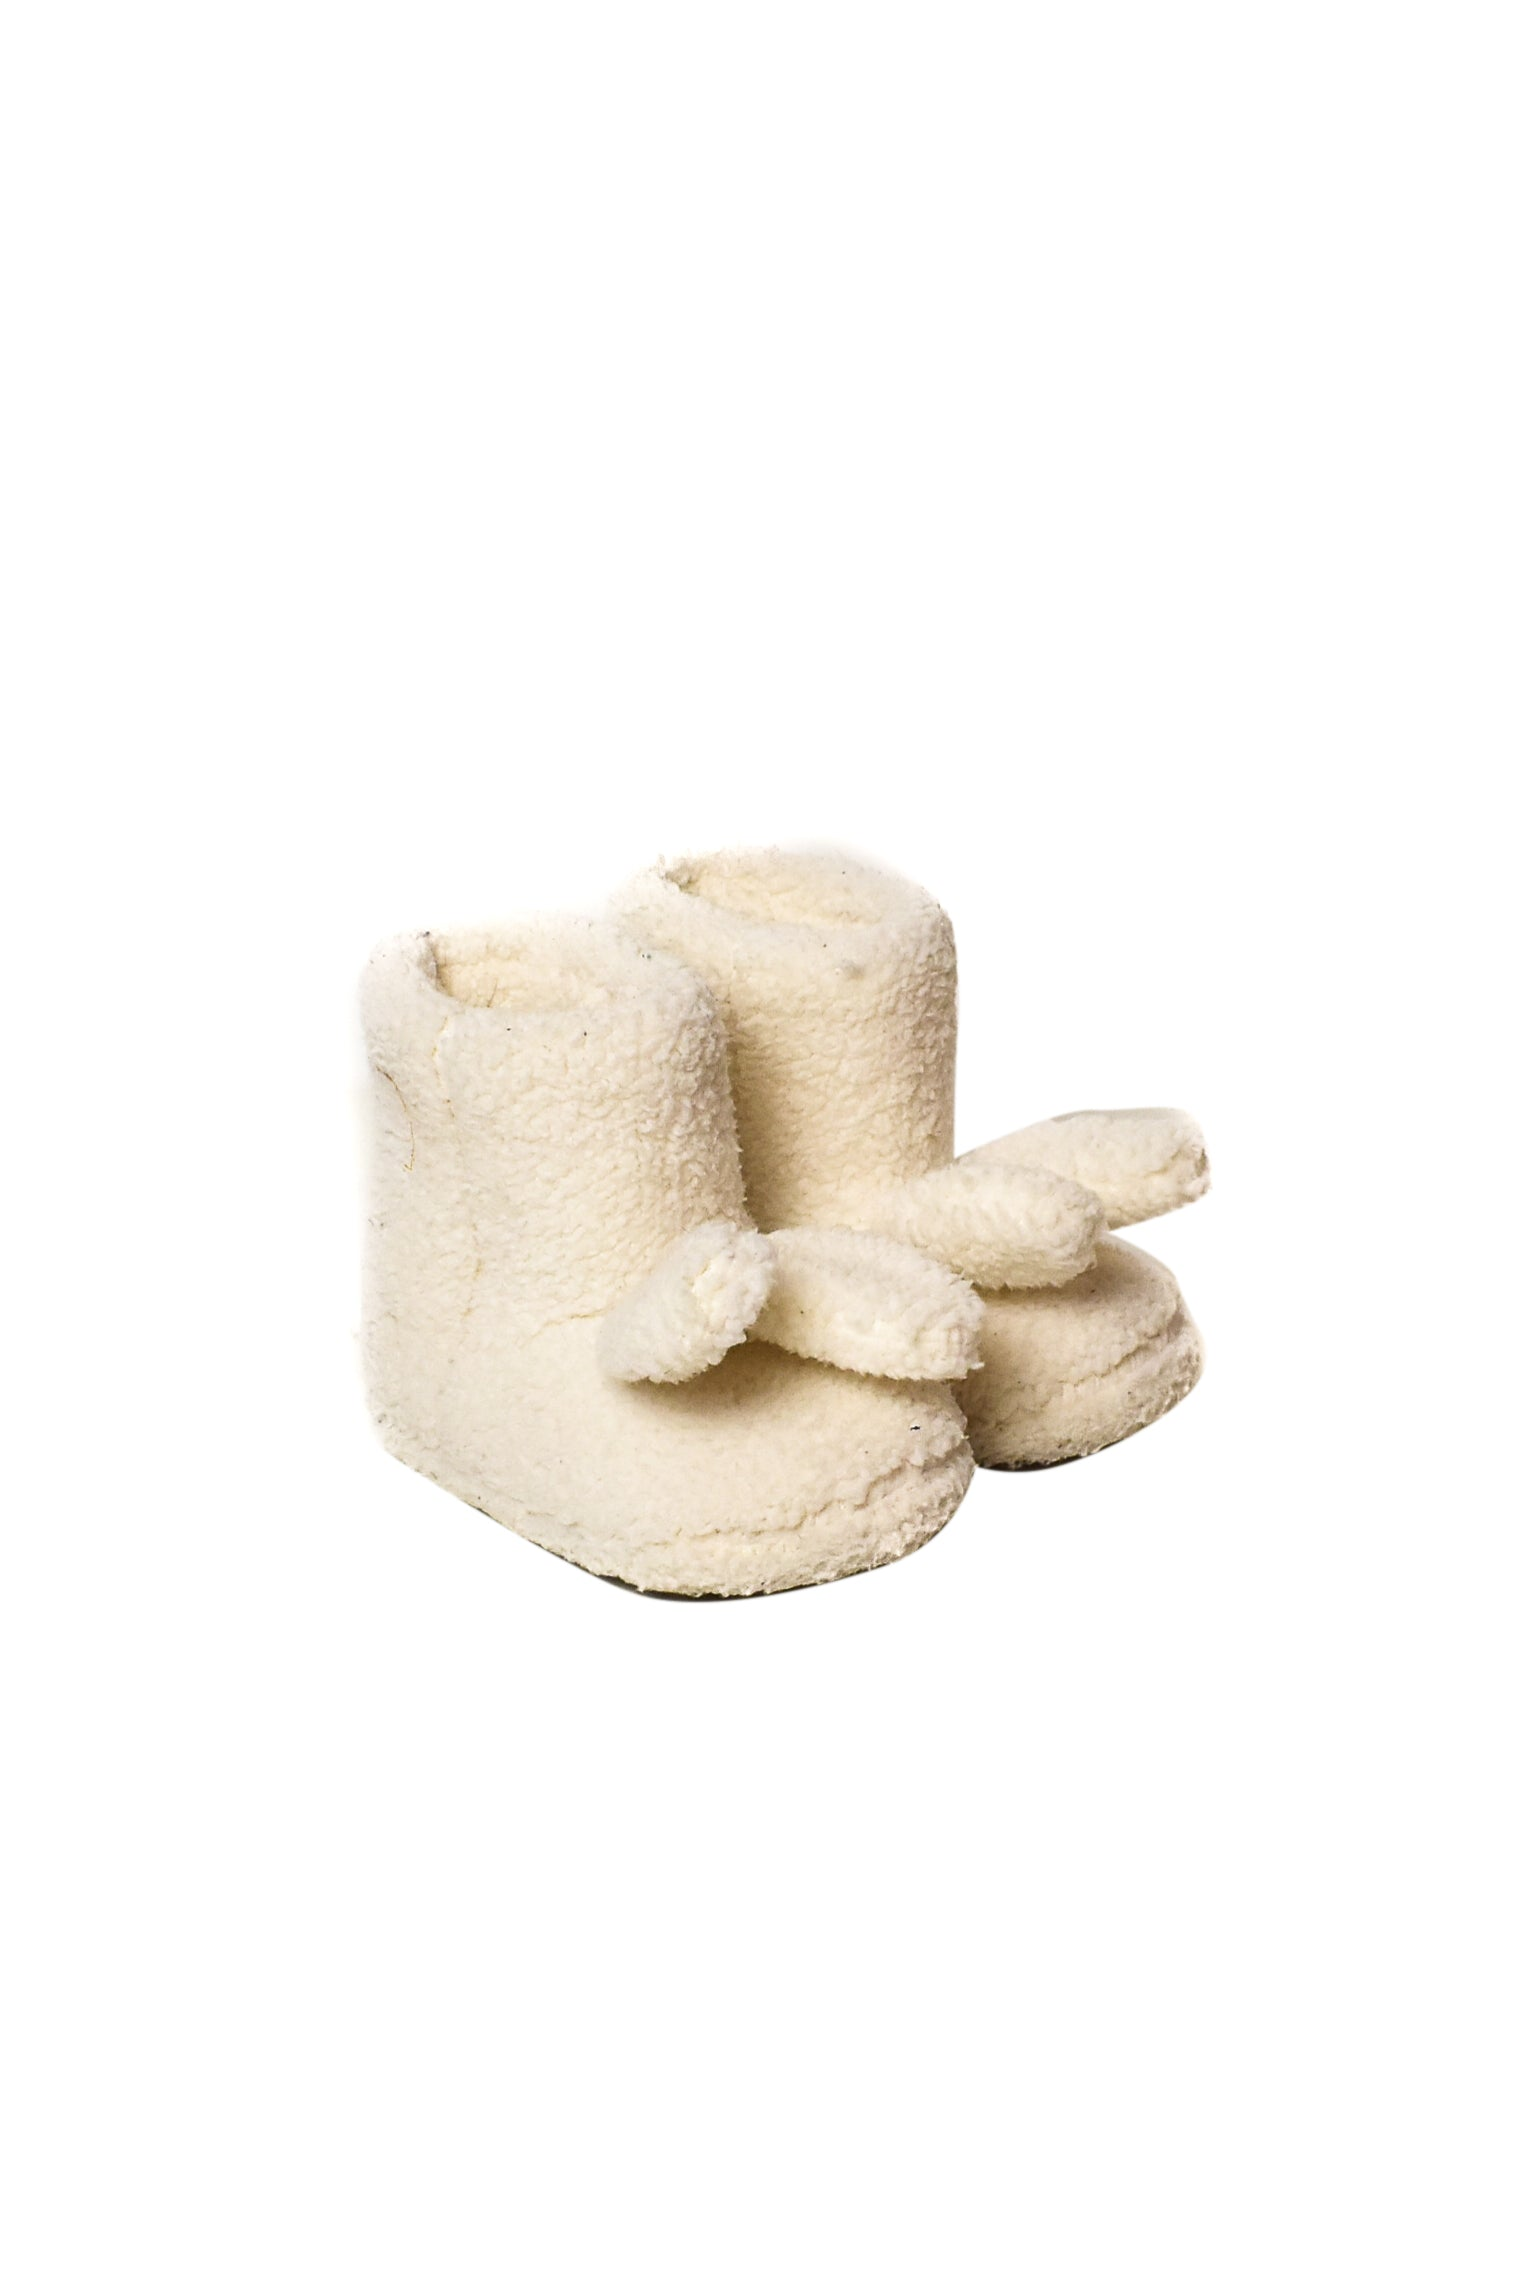 10008643 The Little White Company Kids~Slipper Boots 4-5T at Retykle